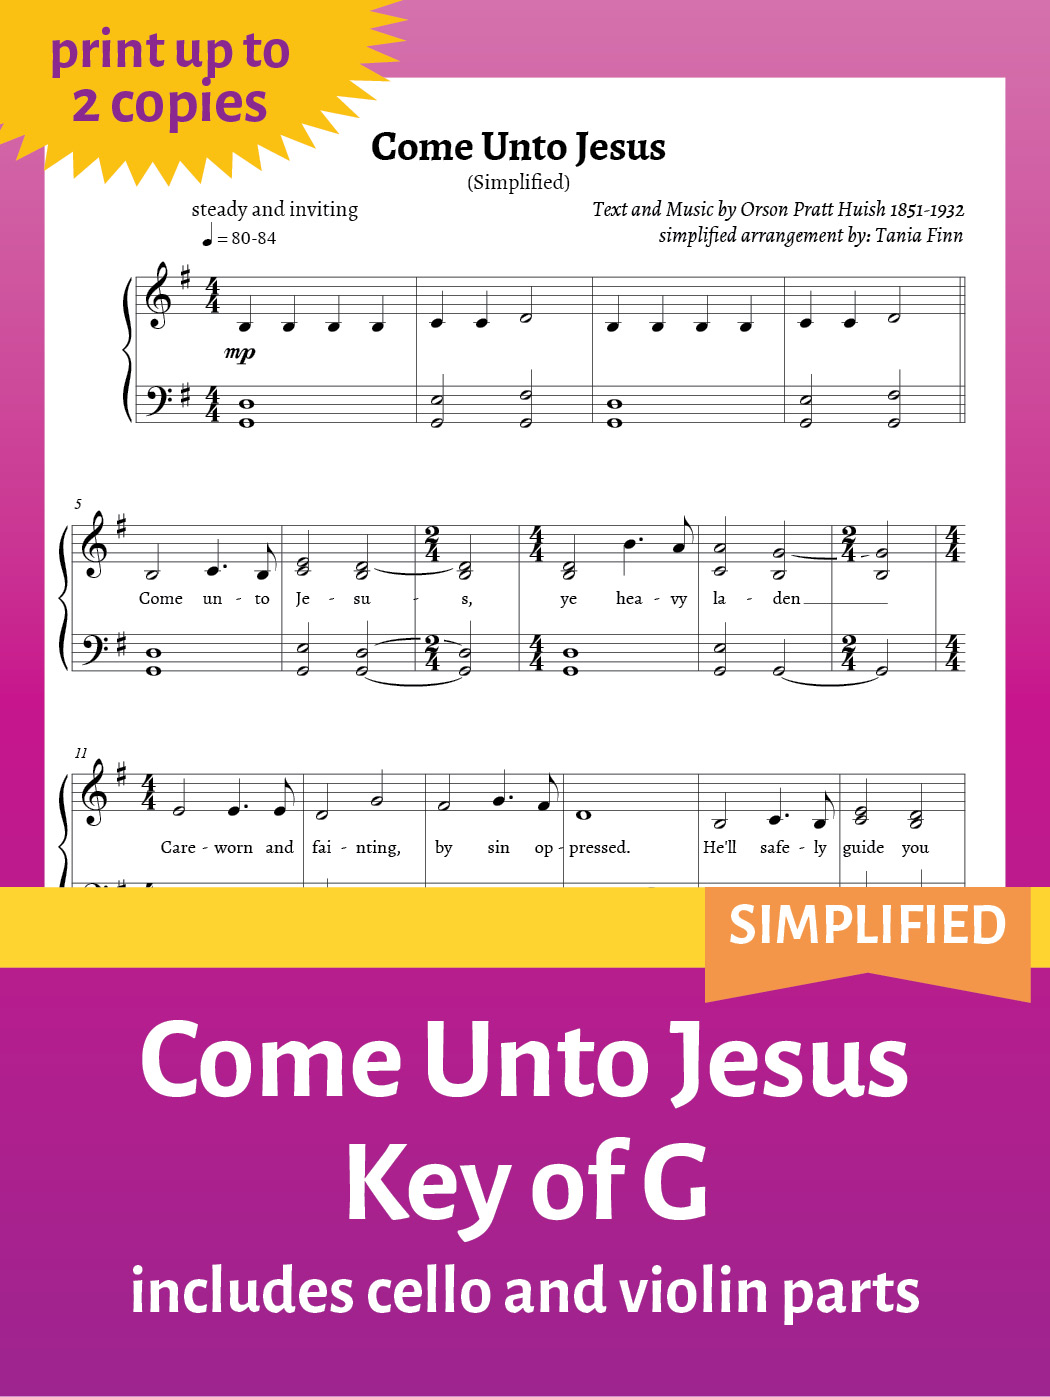 Come Unto Jesus – Sheet Music – Key of G – Simplified – up to 2 copies